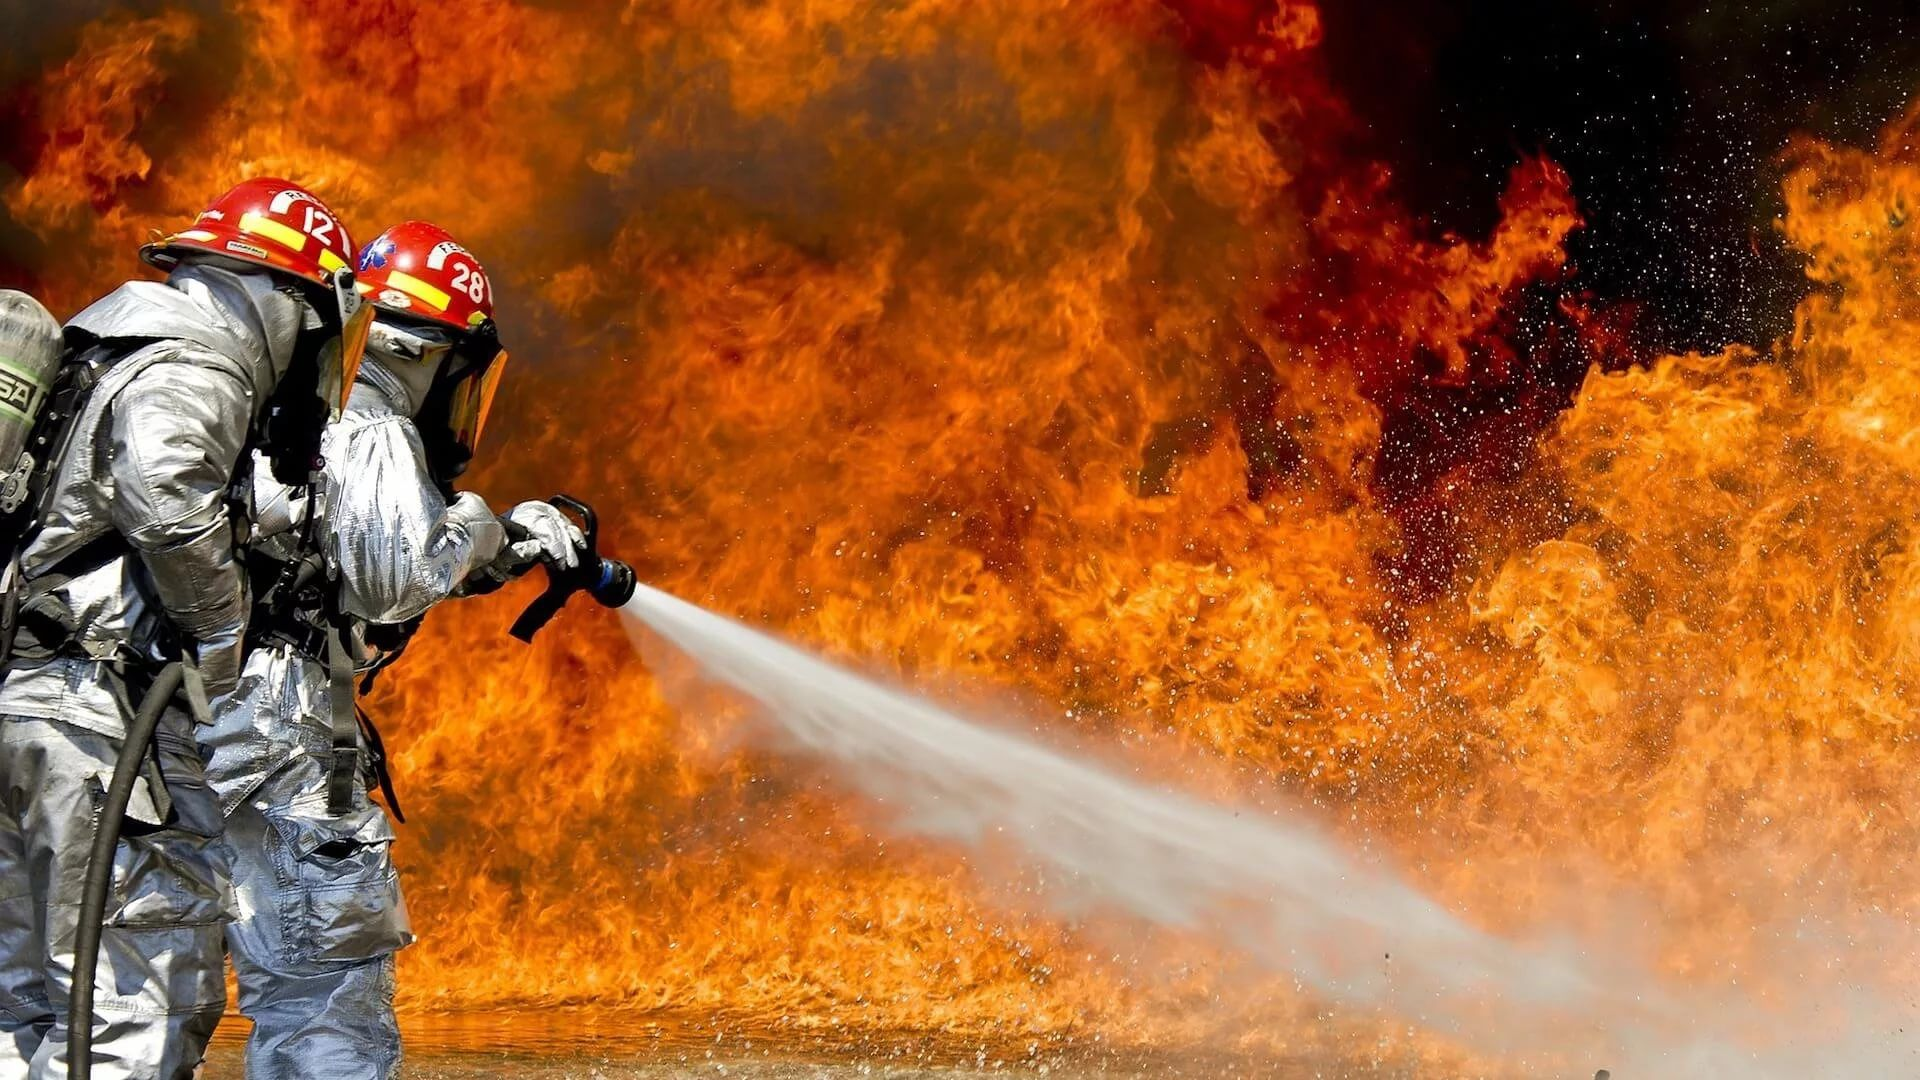 Firefighter HD Download